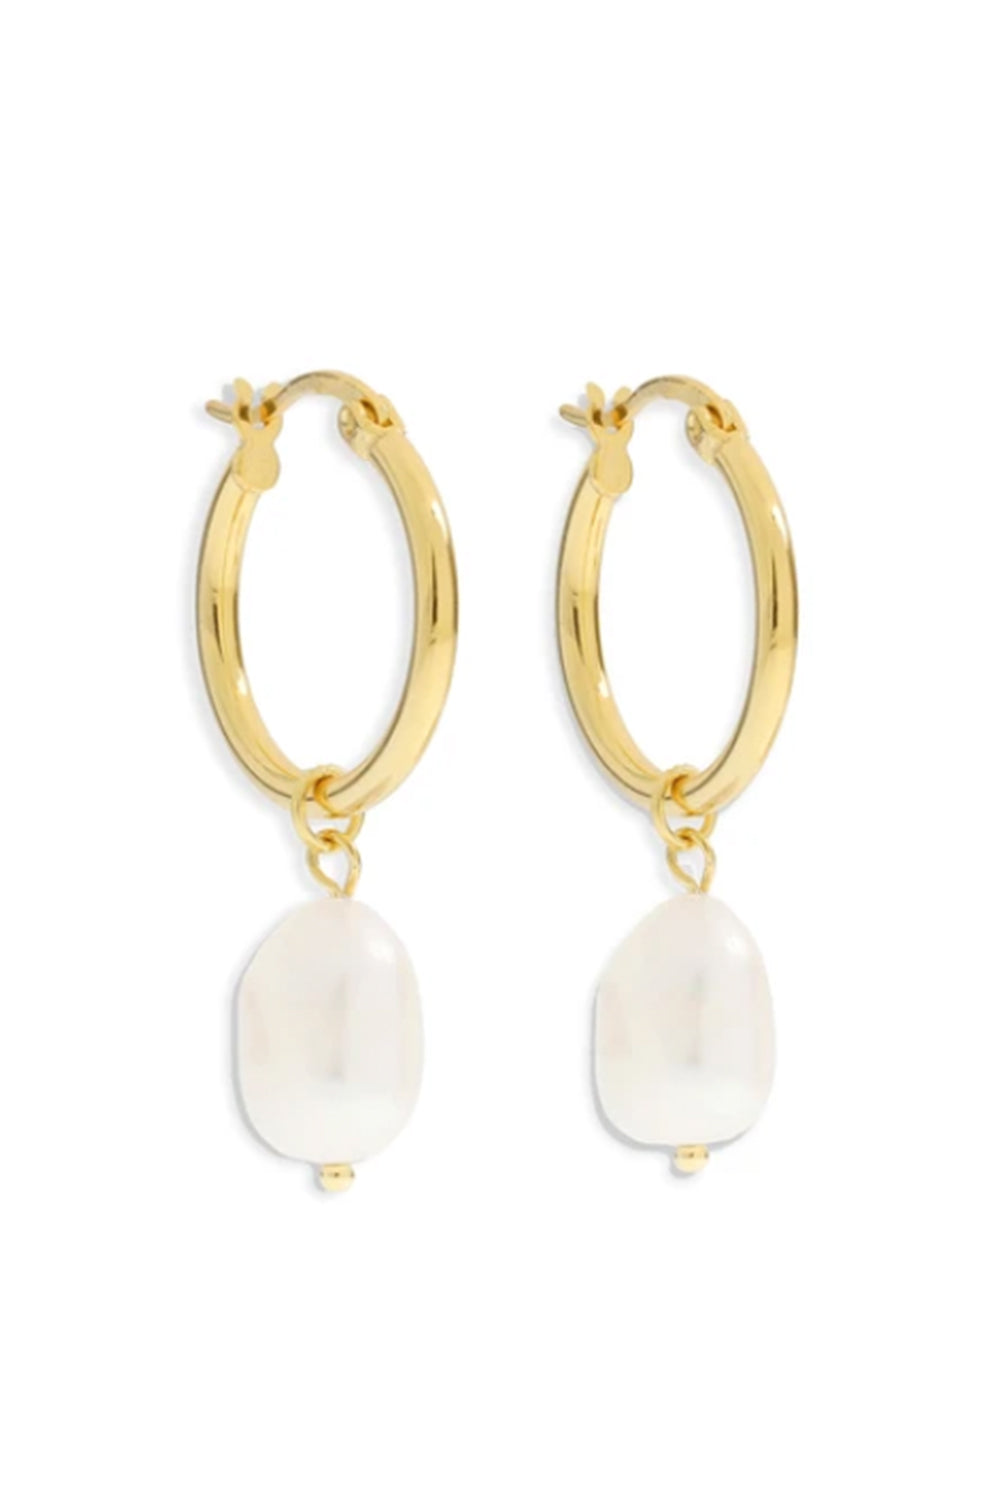 ARMS OF EVE - Augusta Gold Hoop & Freshwater Pearl Earrings - Small - Australian Fashion and Accessories Boutique - Faid Store